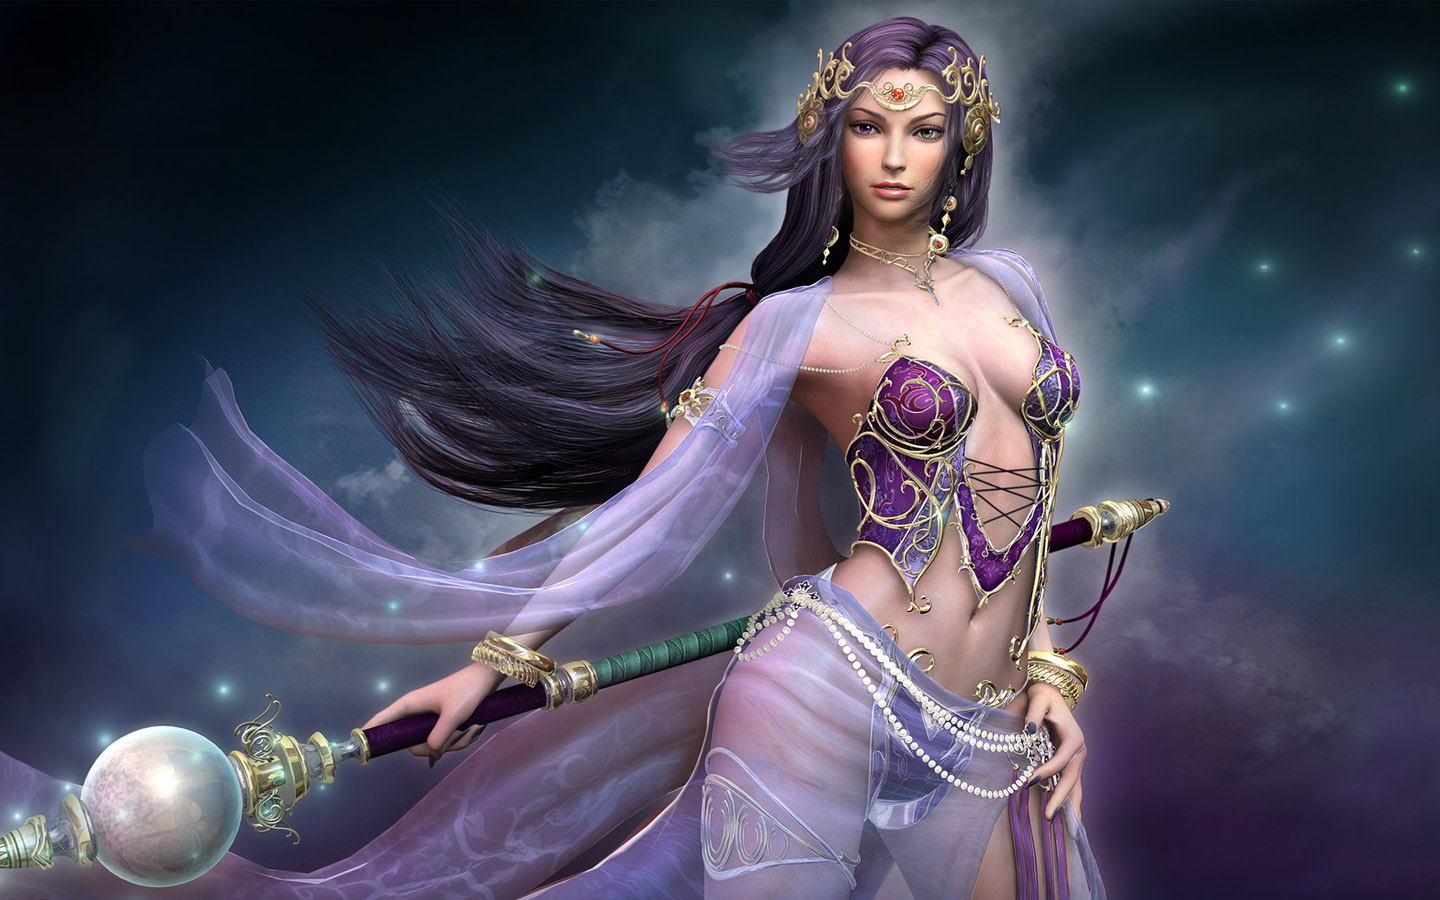 More Fantasy Women Art Wallpapers